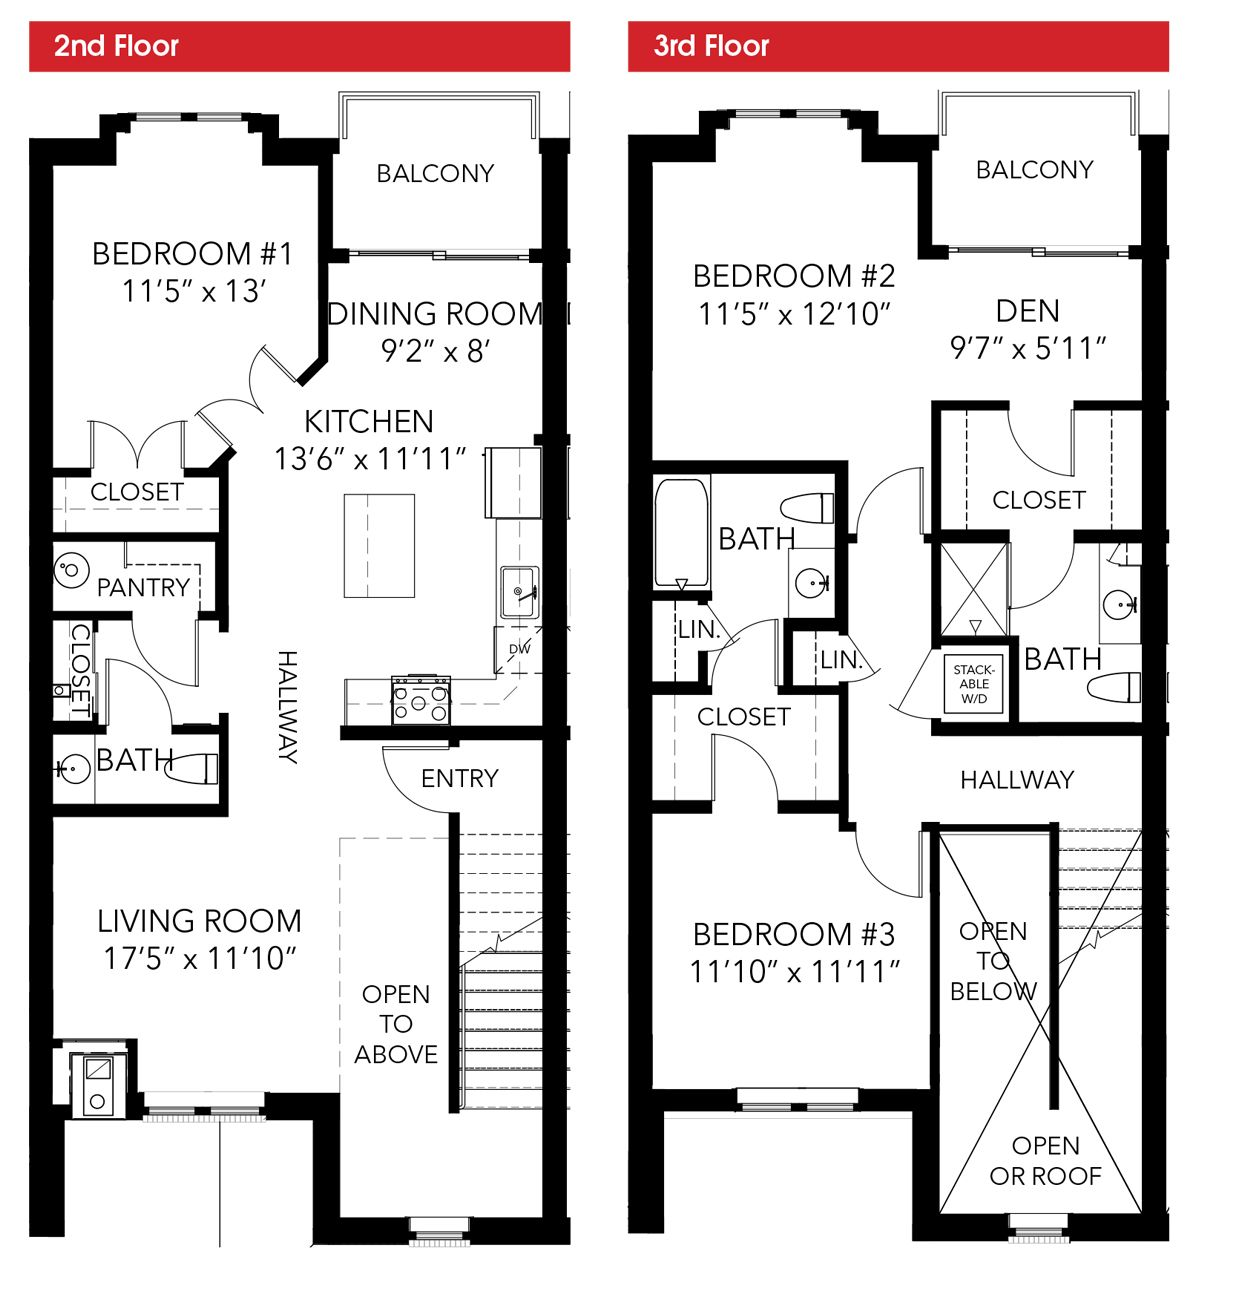 Oakbourne floor plan 3 bedroom 2 story leed certified for Townhouse floor plans 2 bedroom